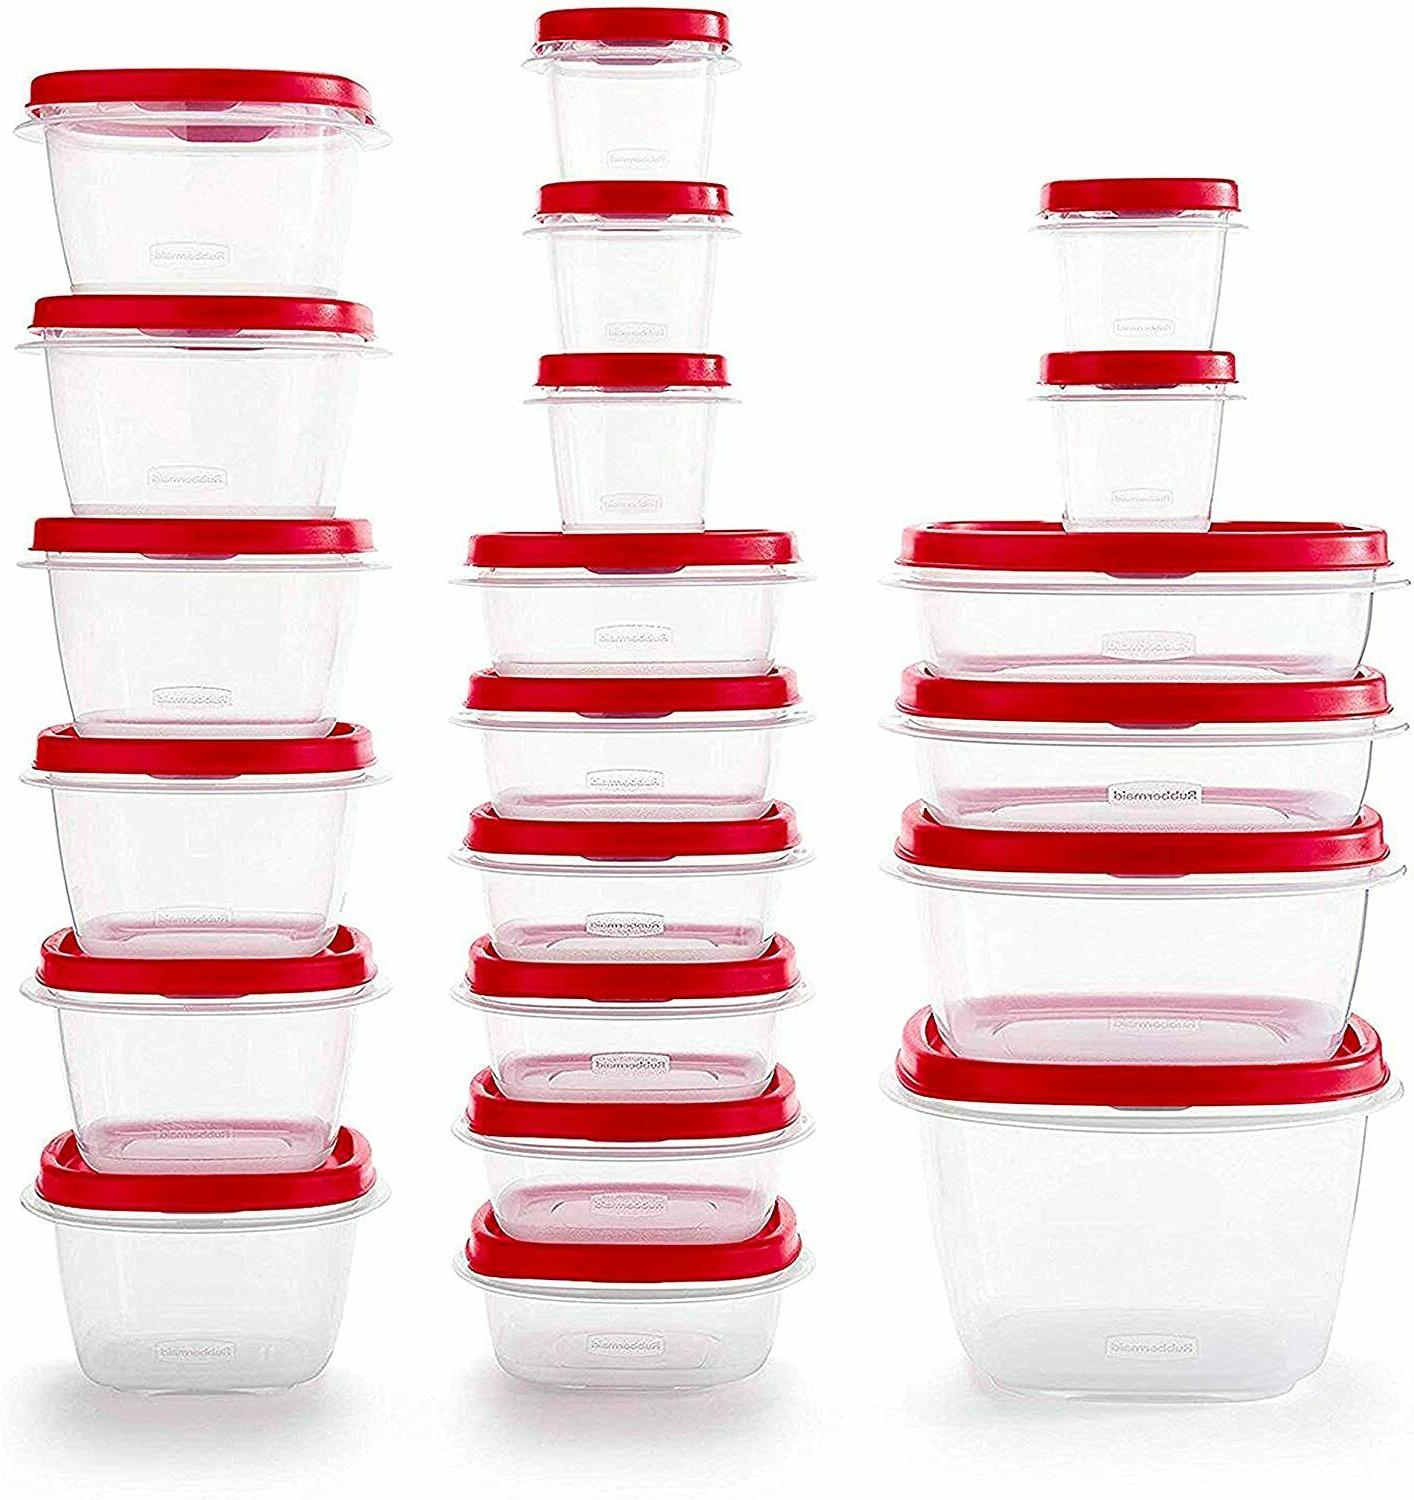 easy find vented lids food storage containers